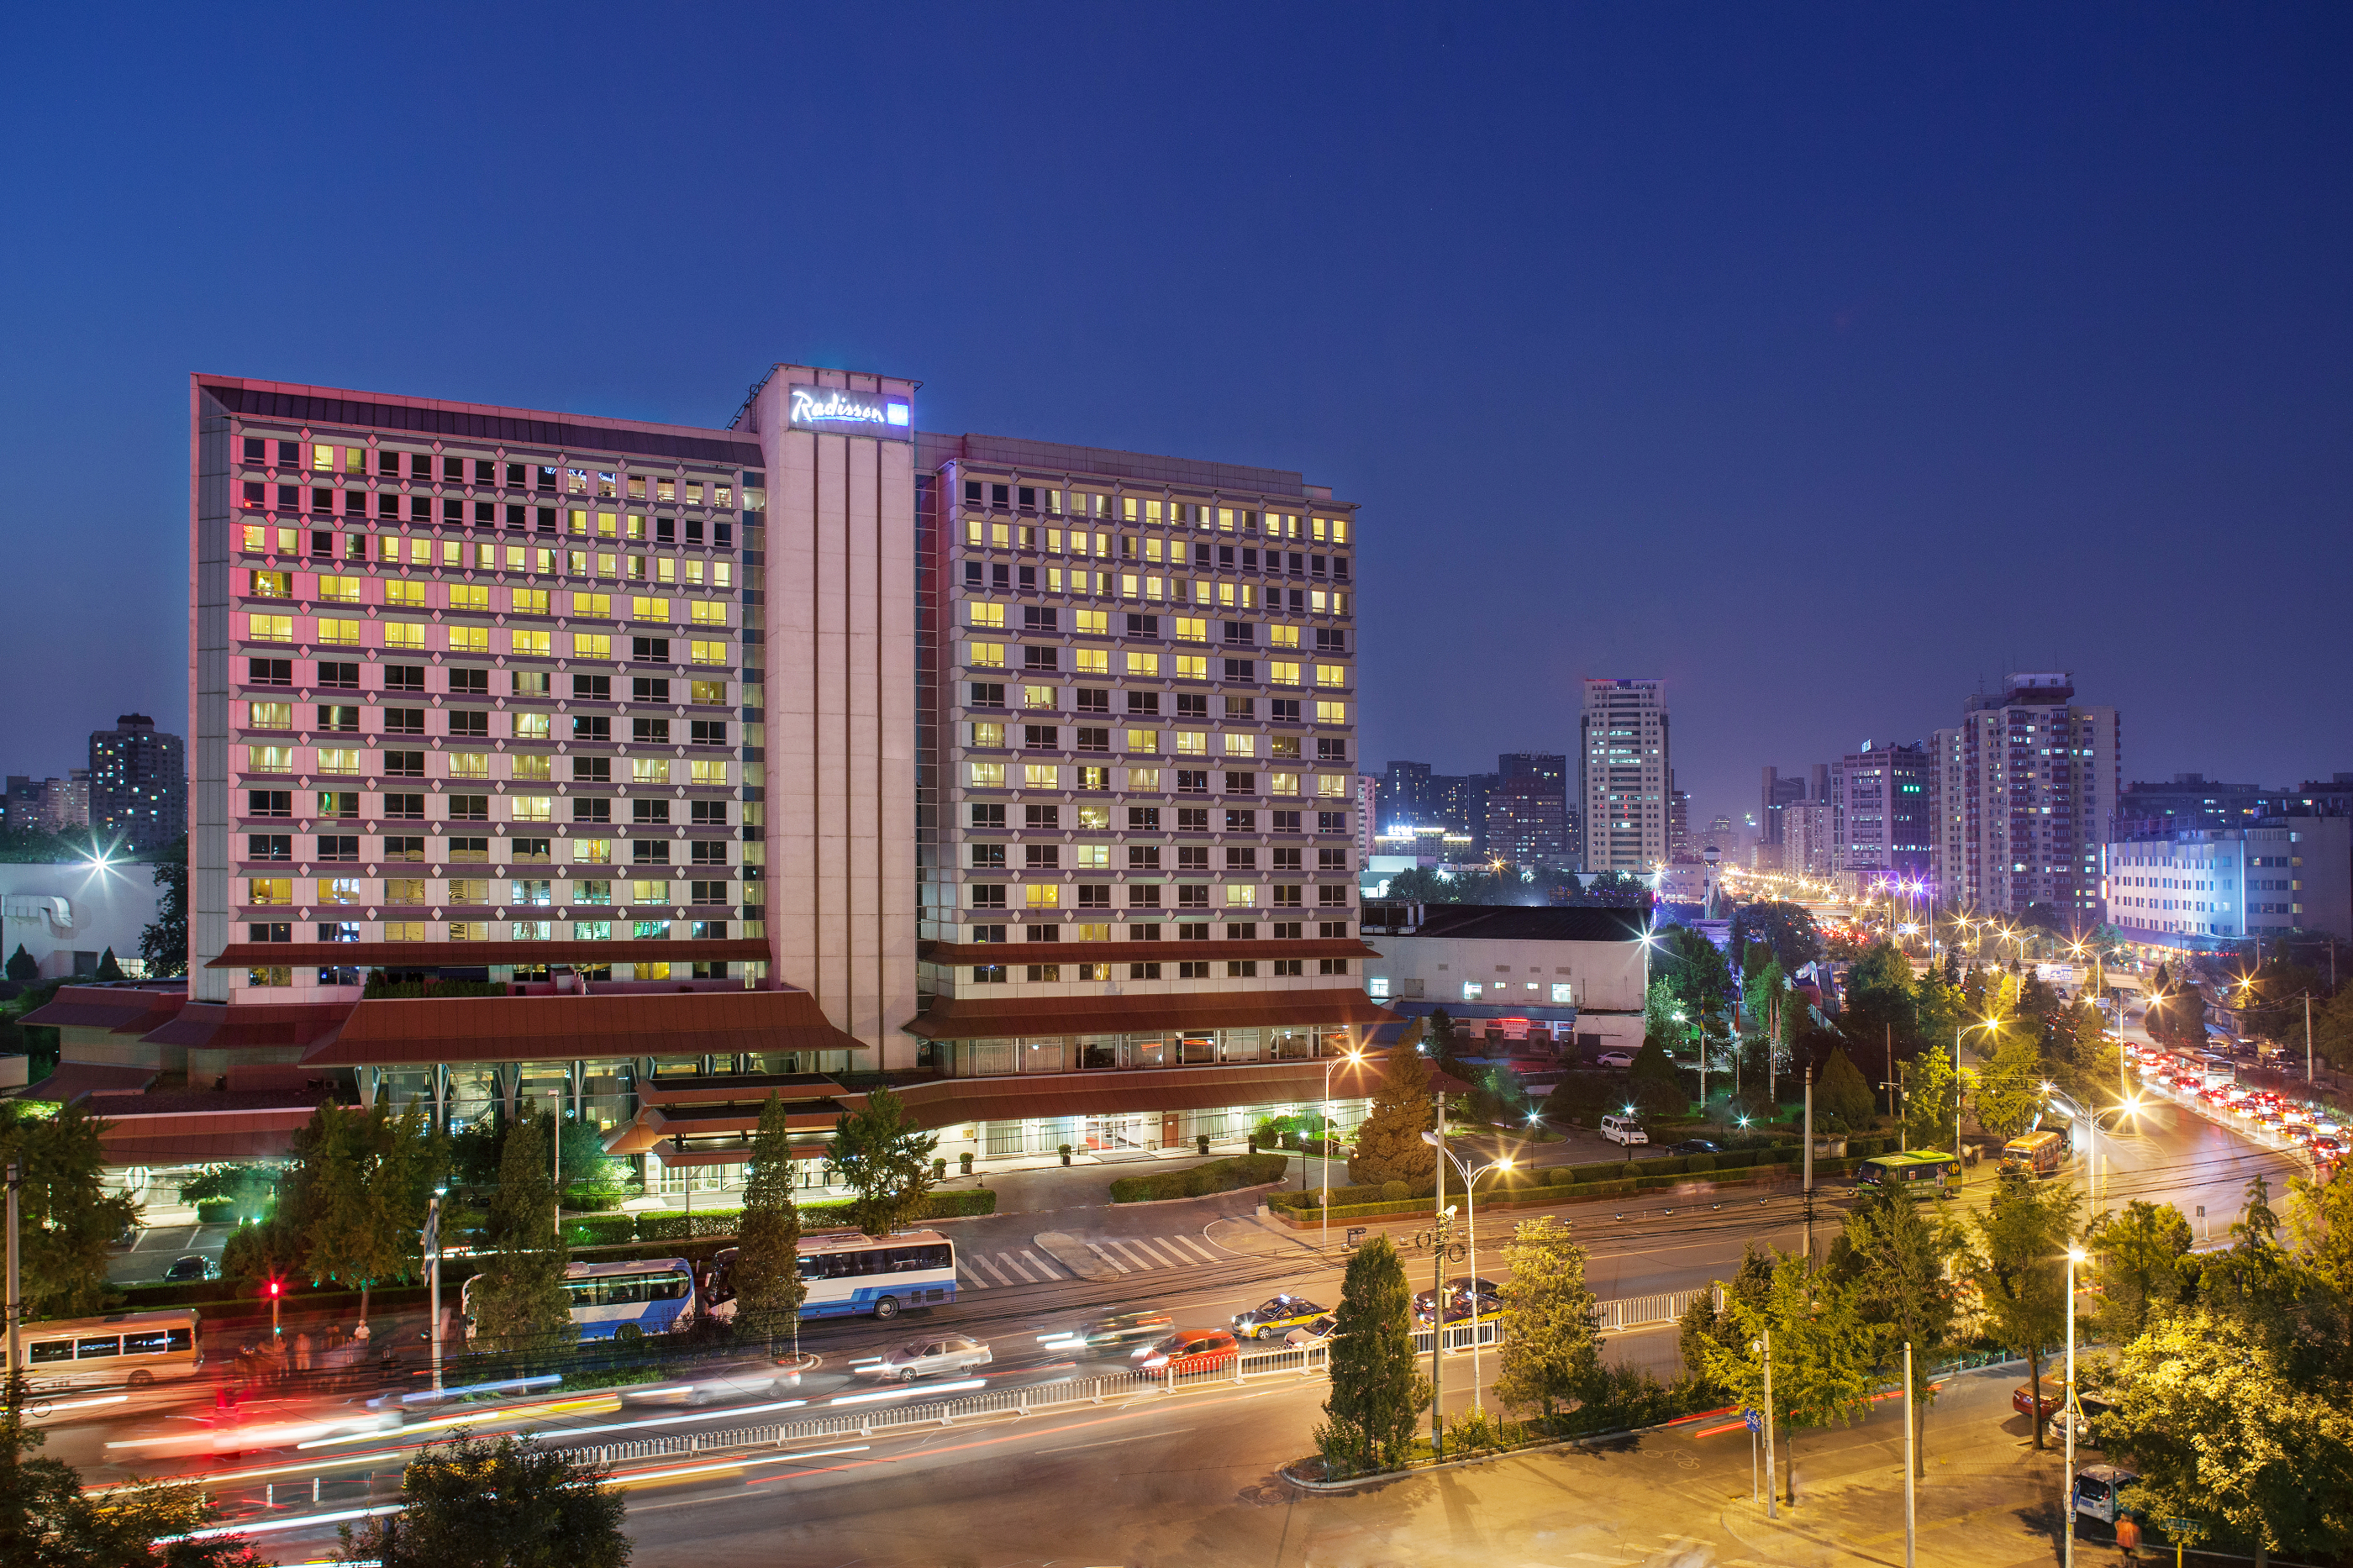 Ideas To Roll Out New Revenue Management Solution And Strategy Services For Carlson Rezidor Hotel Group Portfolio